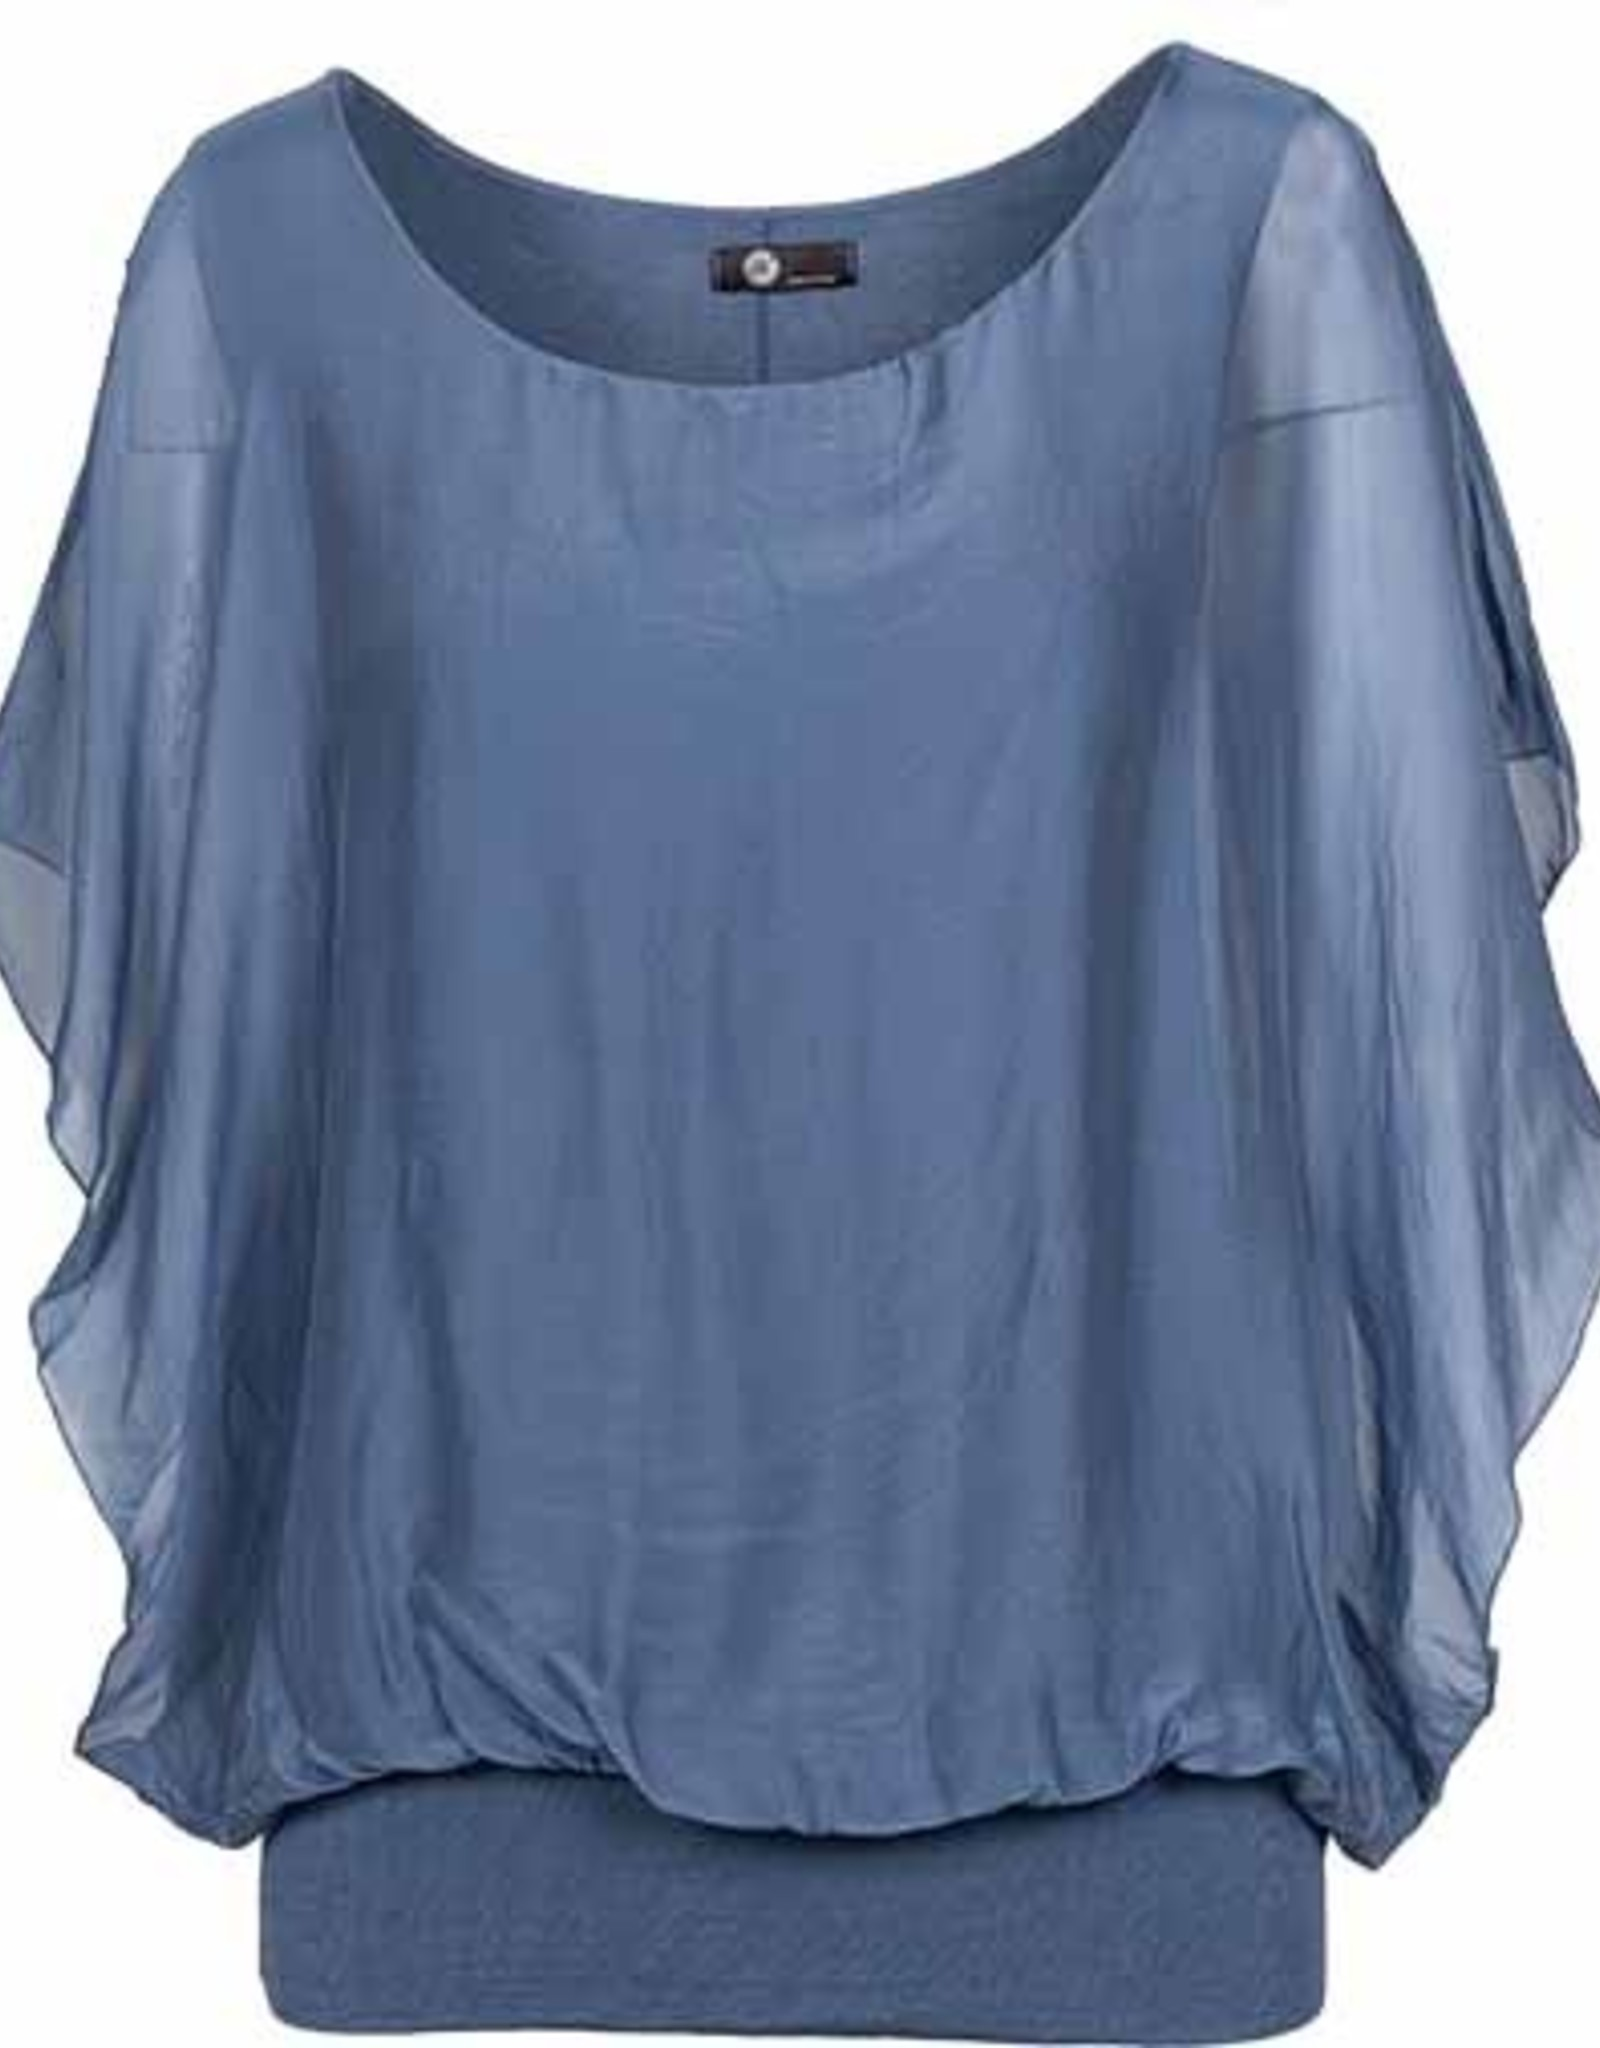 M Made in Italy Silk Blouson Top